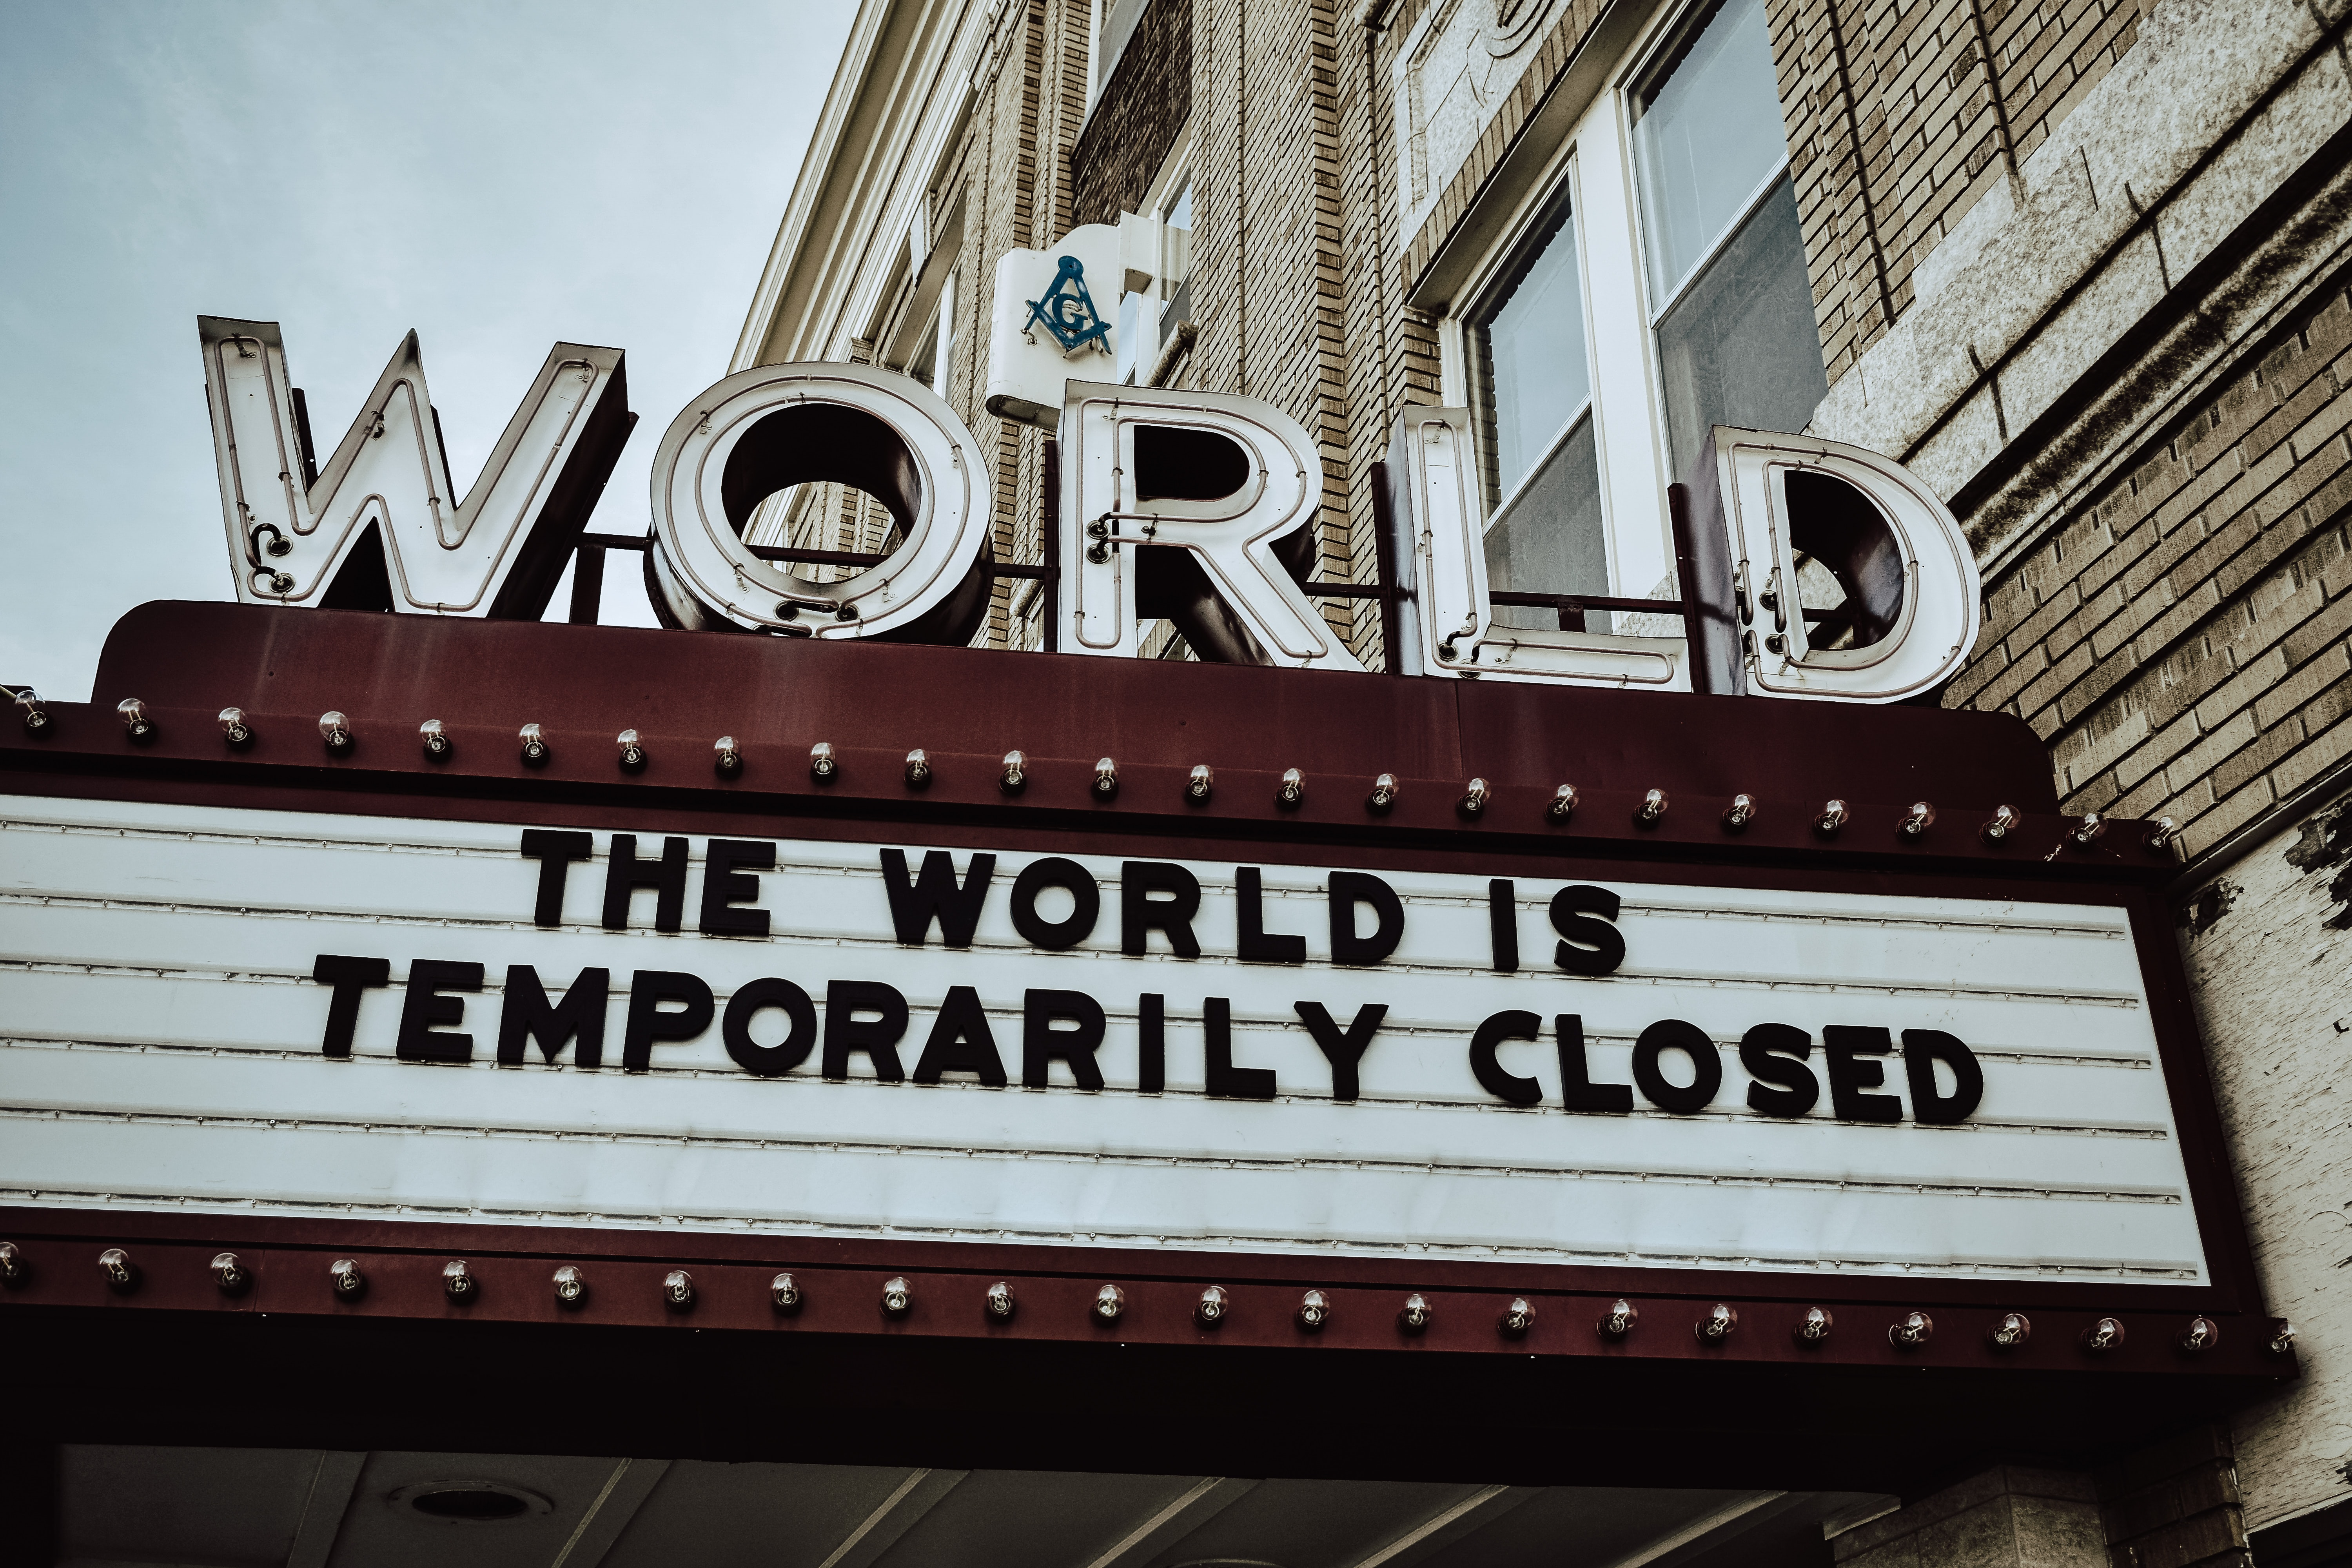 the world is closed Photo by Edwin Hooper on Unsplash